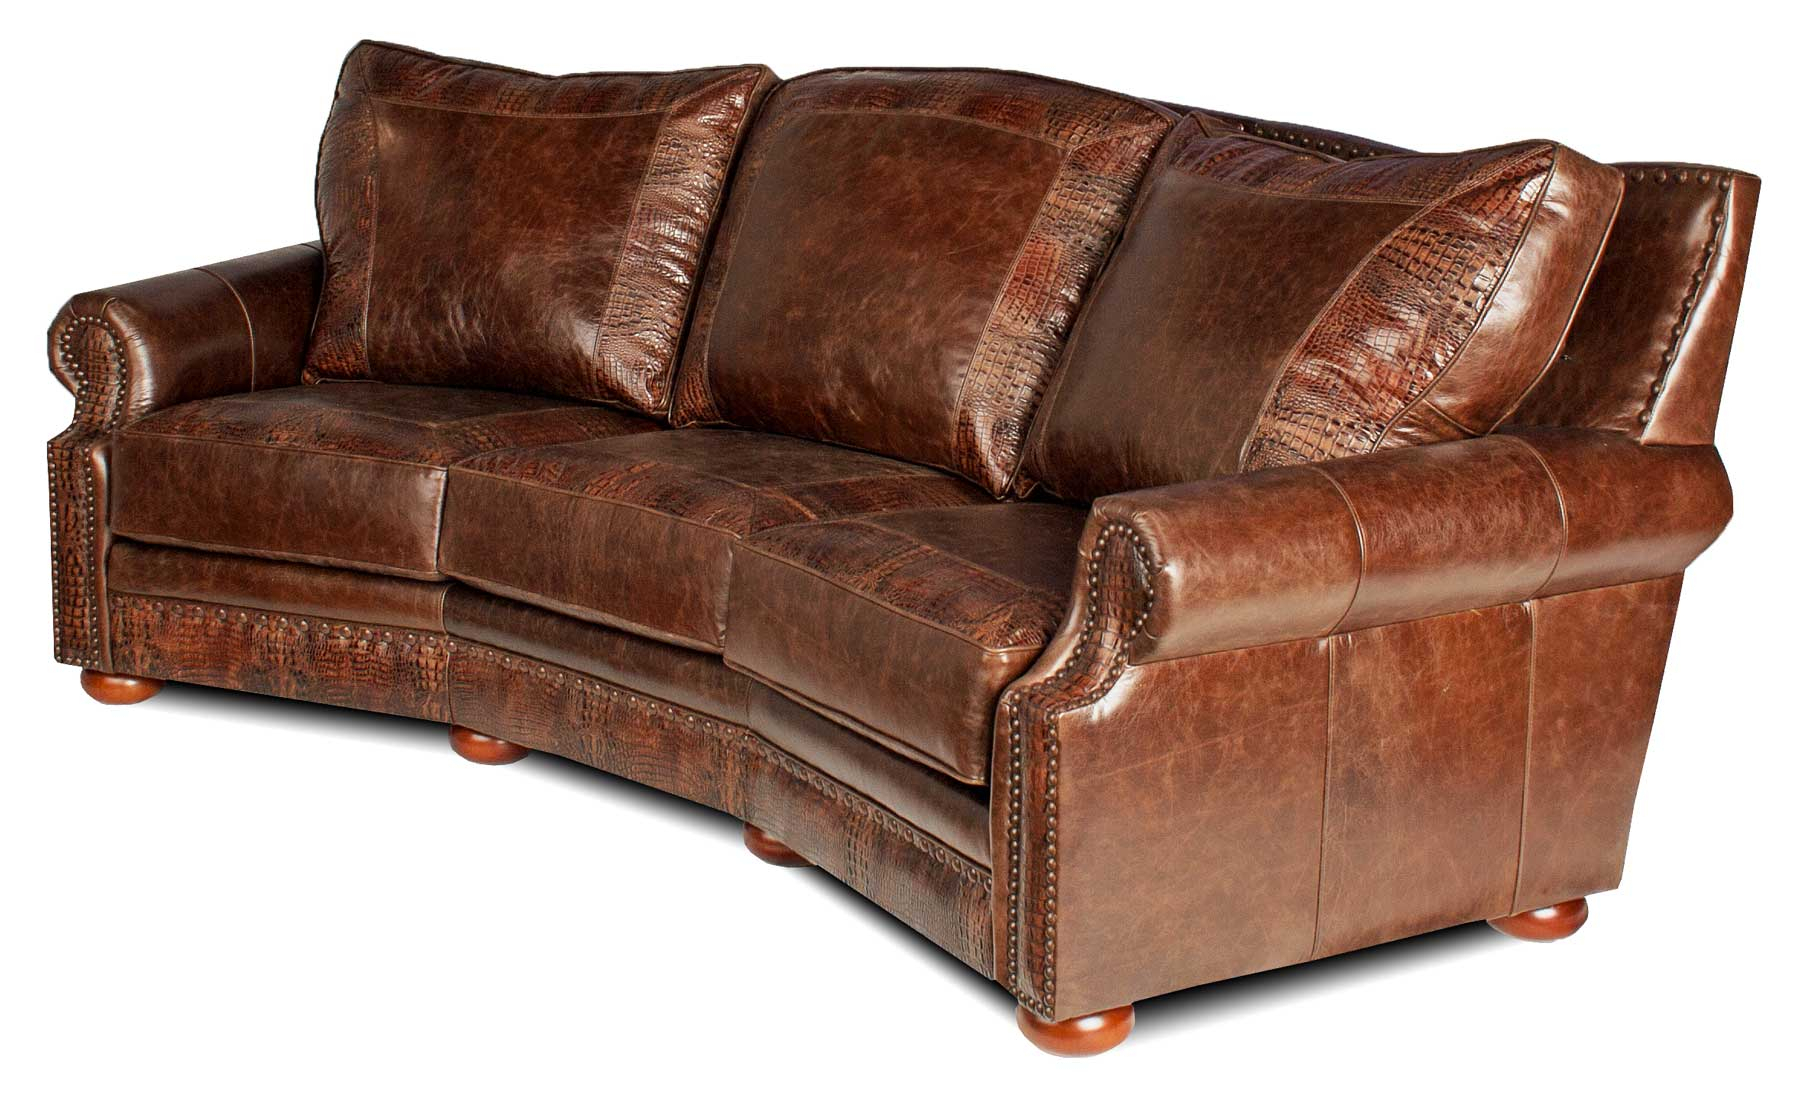 Texas – Hill Country Collection • Leather Creations Inside Country Sofas And Chairs (View 15 of 15)